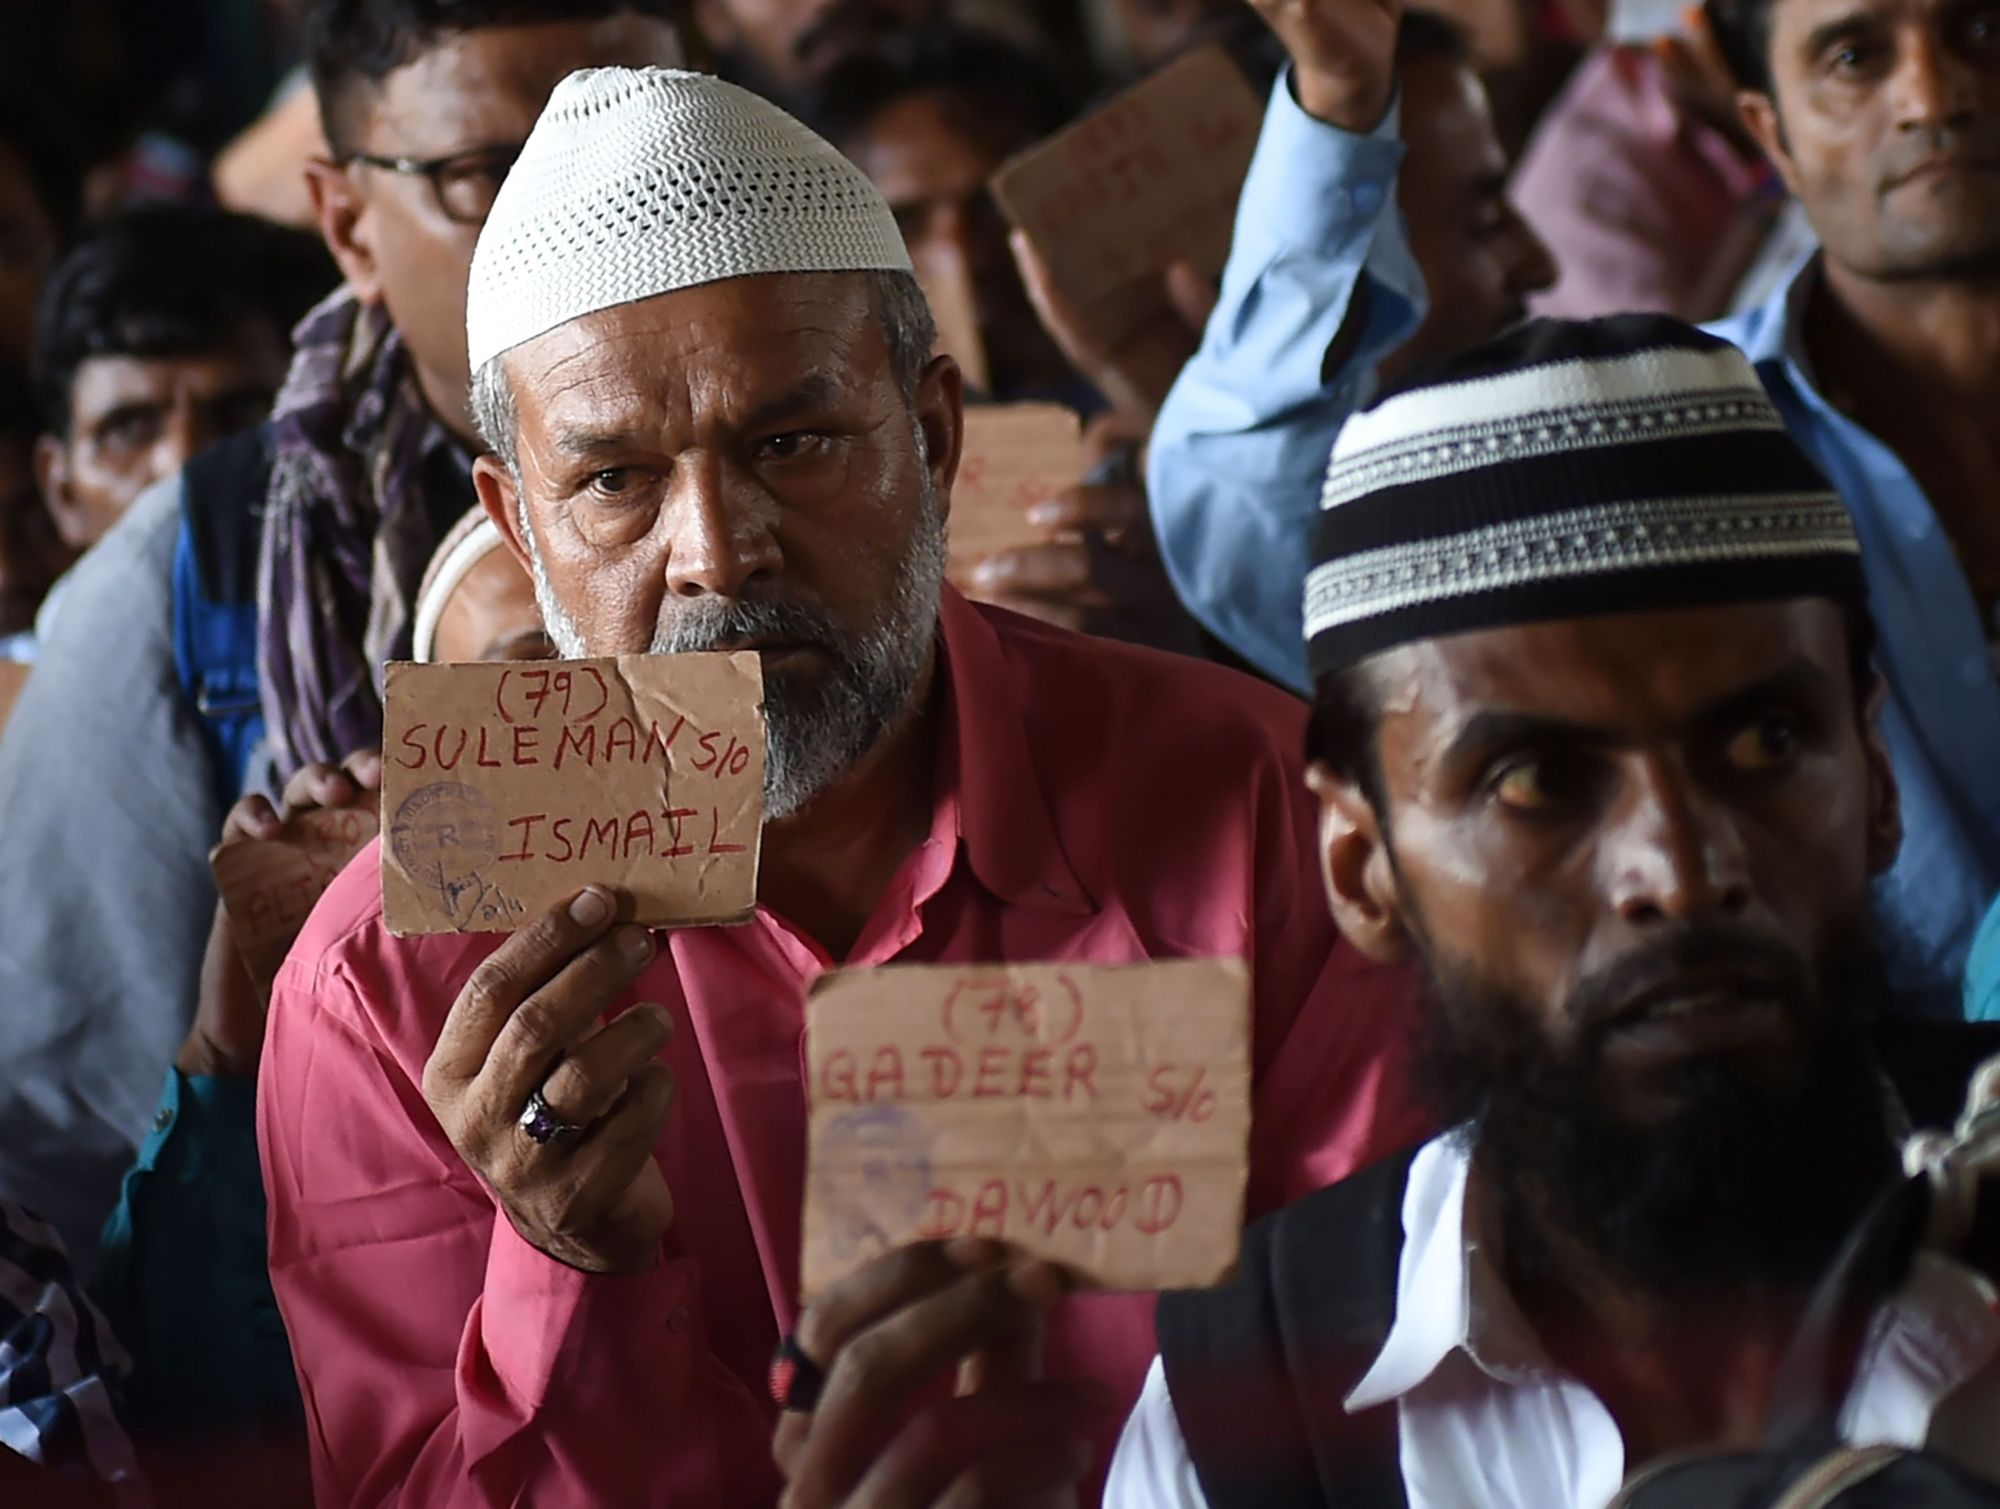 Indian fishermen show their travel cards as they sit at a railway station in Karachi, Pakistan, Sunday  after they were released from the Malir Jail. Pakistan released 100 Indian fishermen held for trespassing into its territorial waters, officials said. | AFP-JIJI